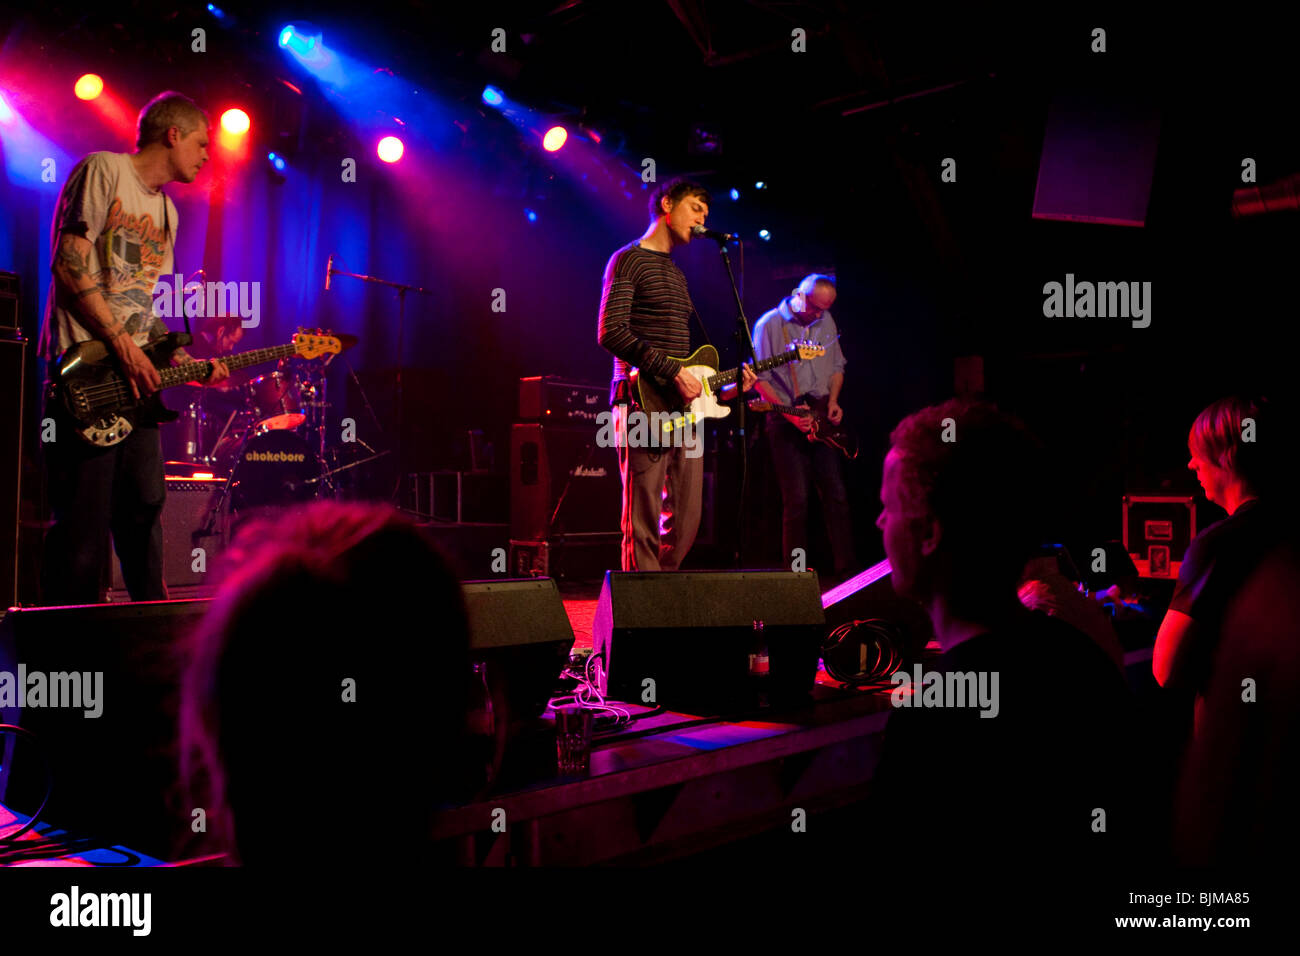 The U.S. Hawaiian band Chokebore live in the Schueuer venue, Lucerne, Switzerland - Stock Image